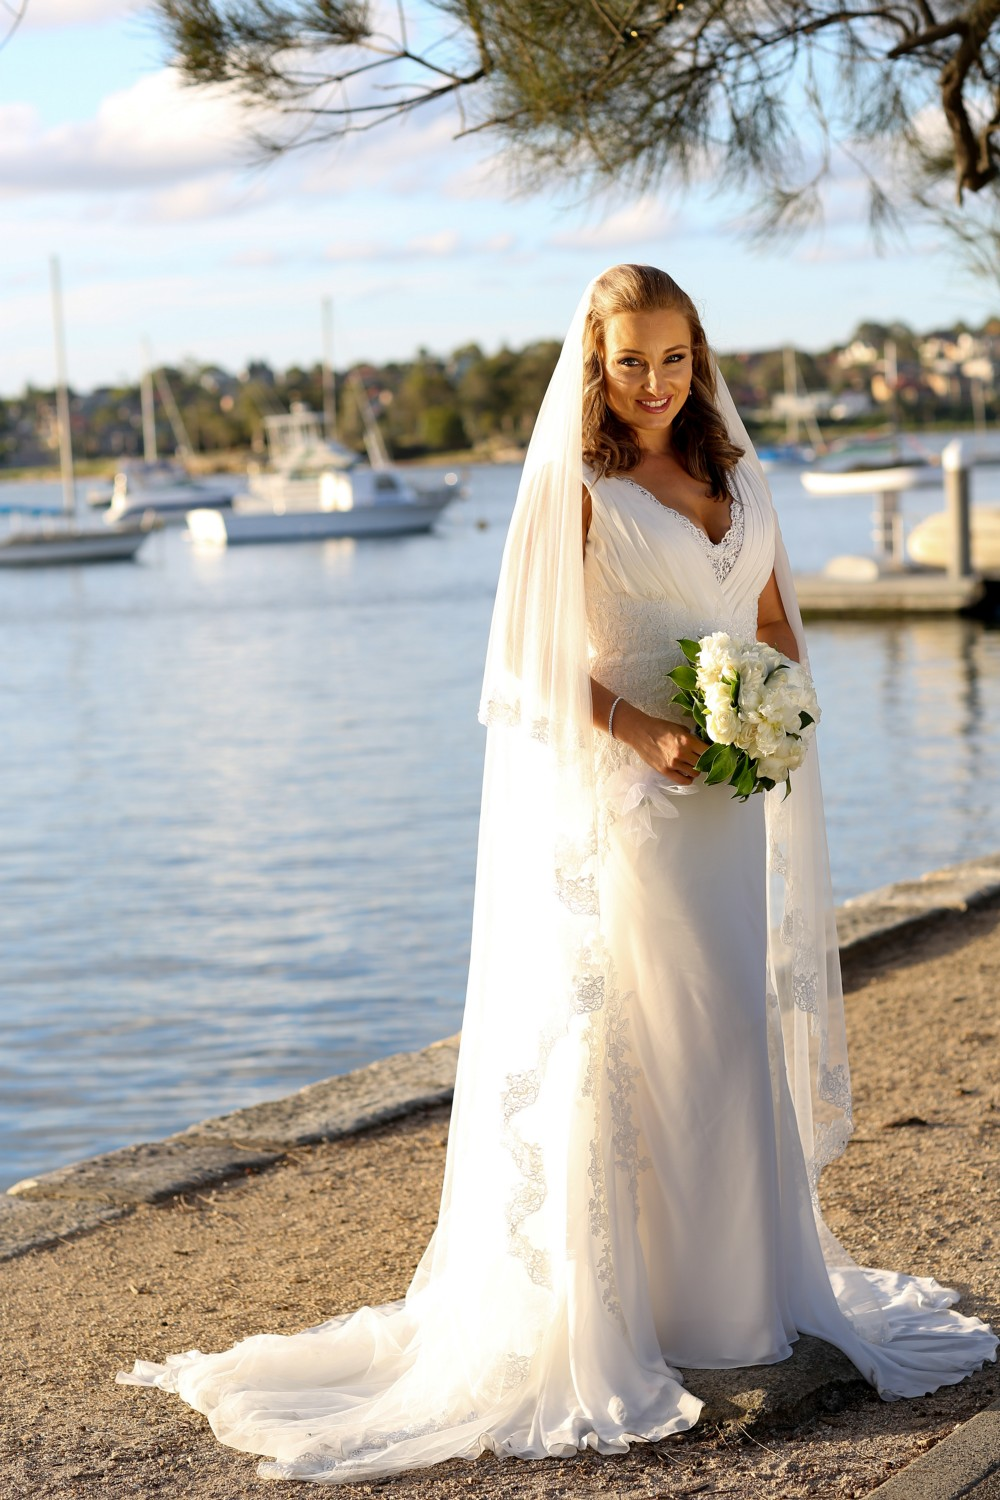 Pronovias Lamer0 Pre-Owned Wedding Dress on Sale 35% Off